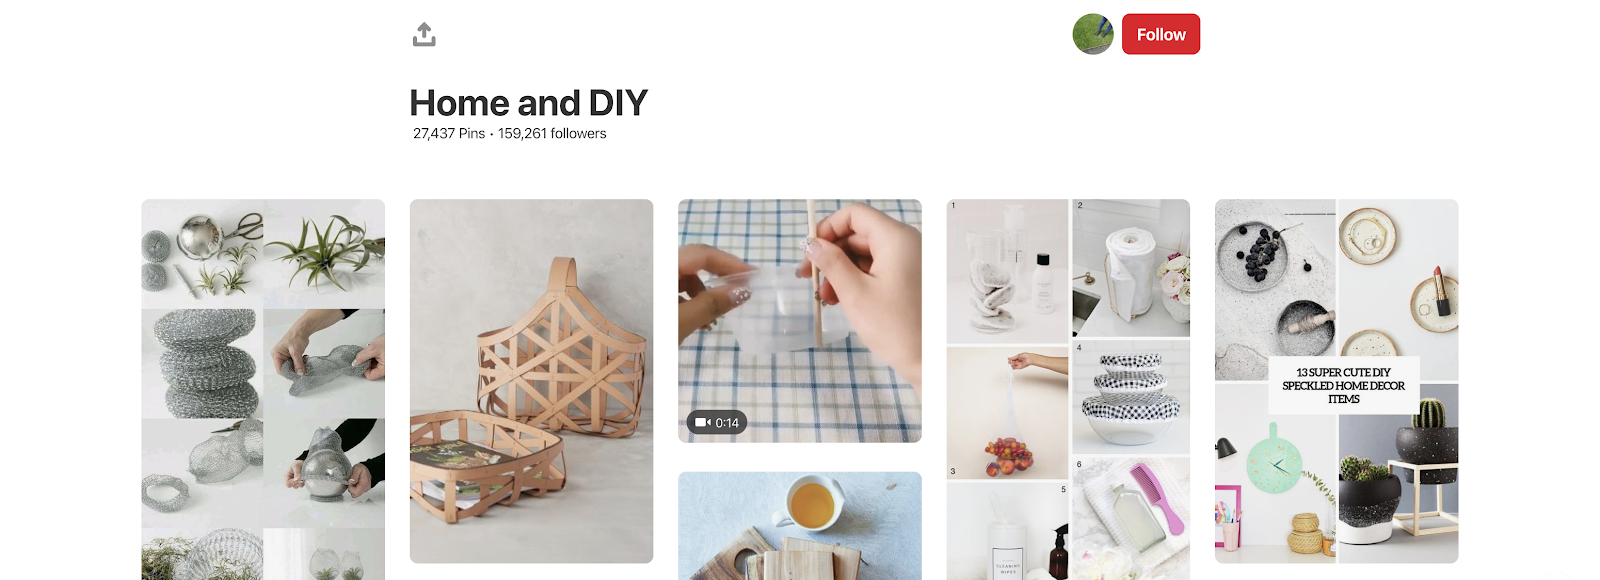 Pinterest Home and DIY board